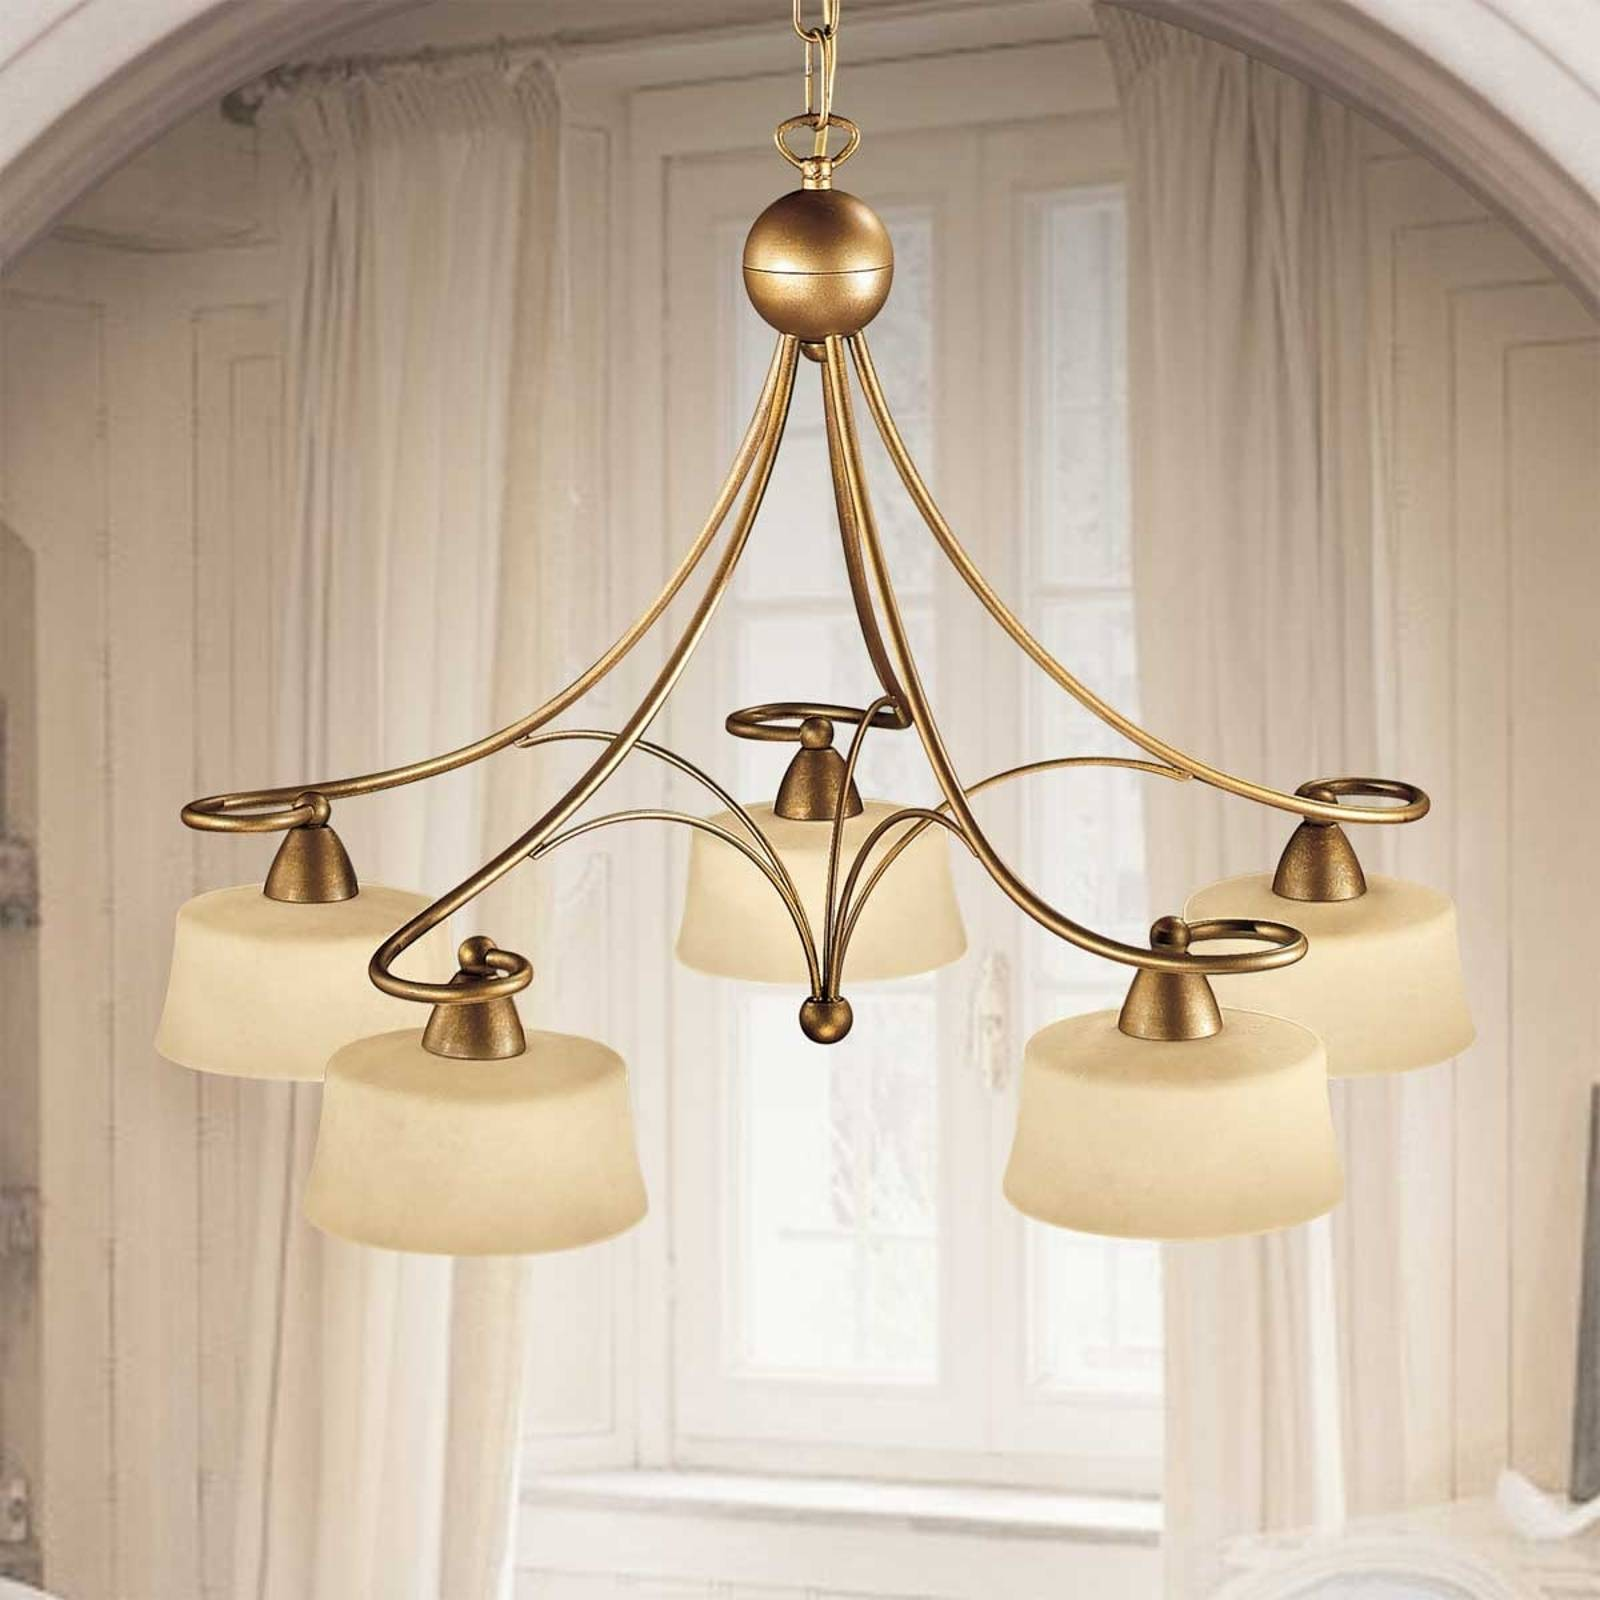 Alessio hanging light, 5 scavo glass lampshades from Lam